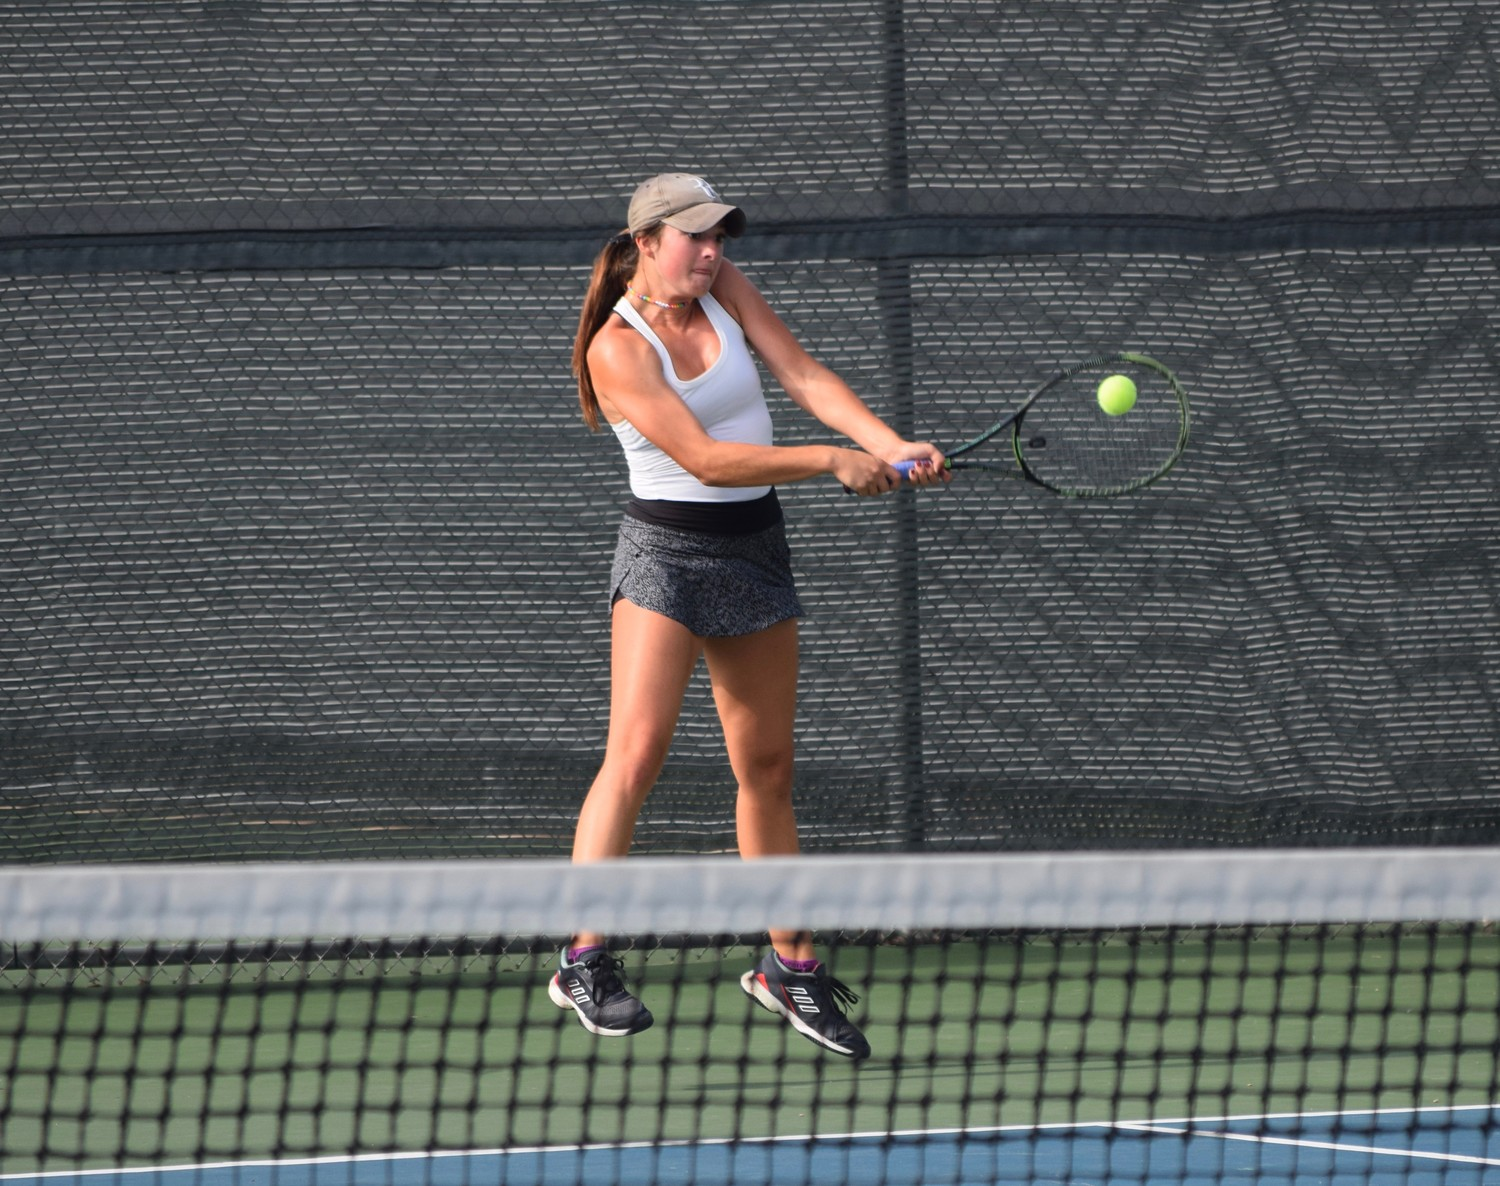 Gabby Cusano was one of seven Vandegrift tennis players at the state tennis tournament in College Station last week. Cusano fell 6-1, 7-6 (2) to Melissa LaMette of Cypress Ranch in the semifinals.